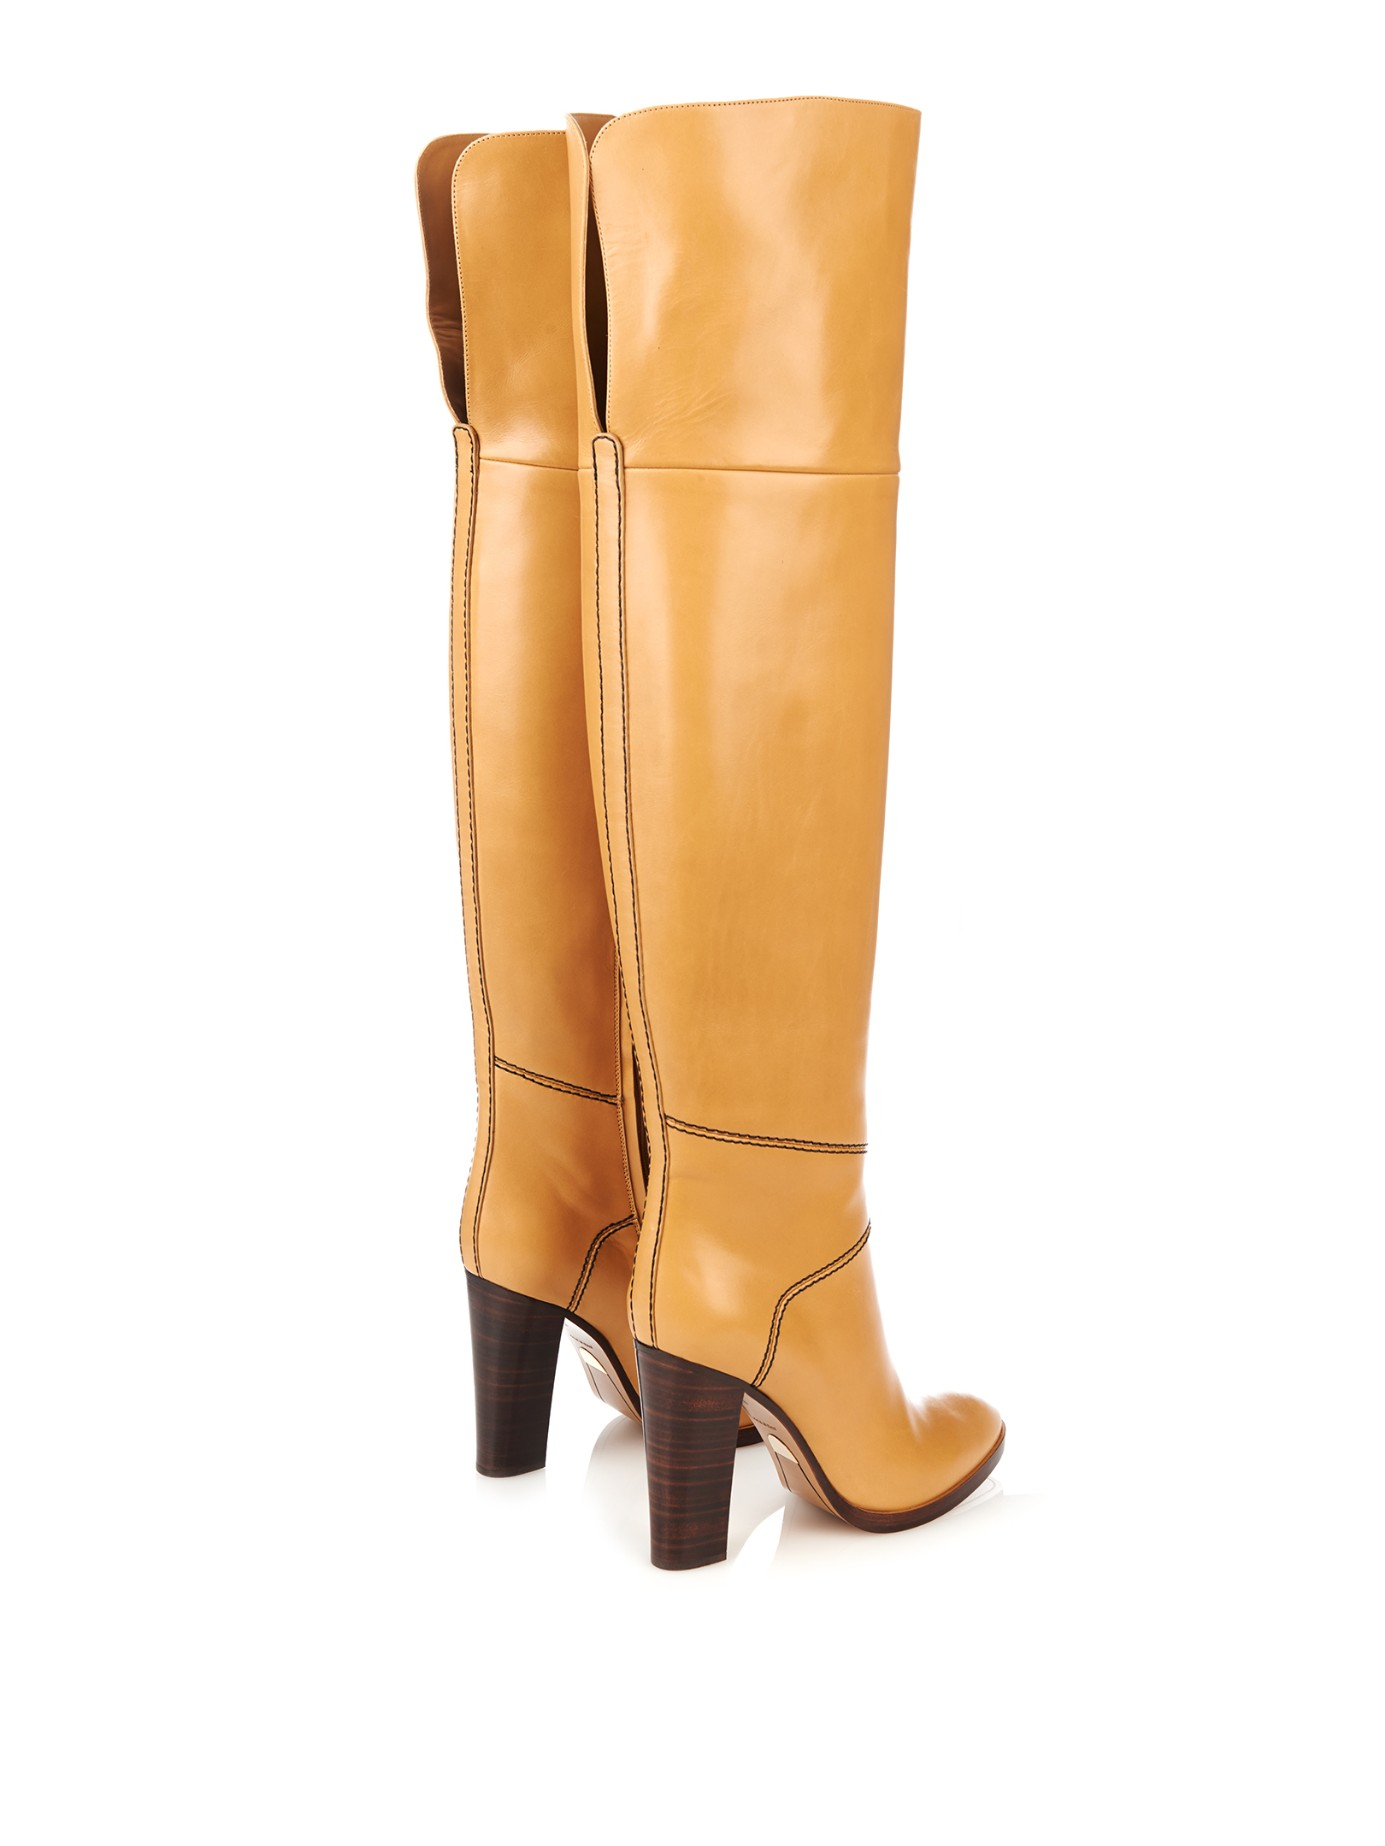 Chloé Graze Over-The-Knee Leather Boots in Brown | Lyst